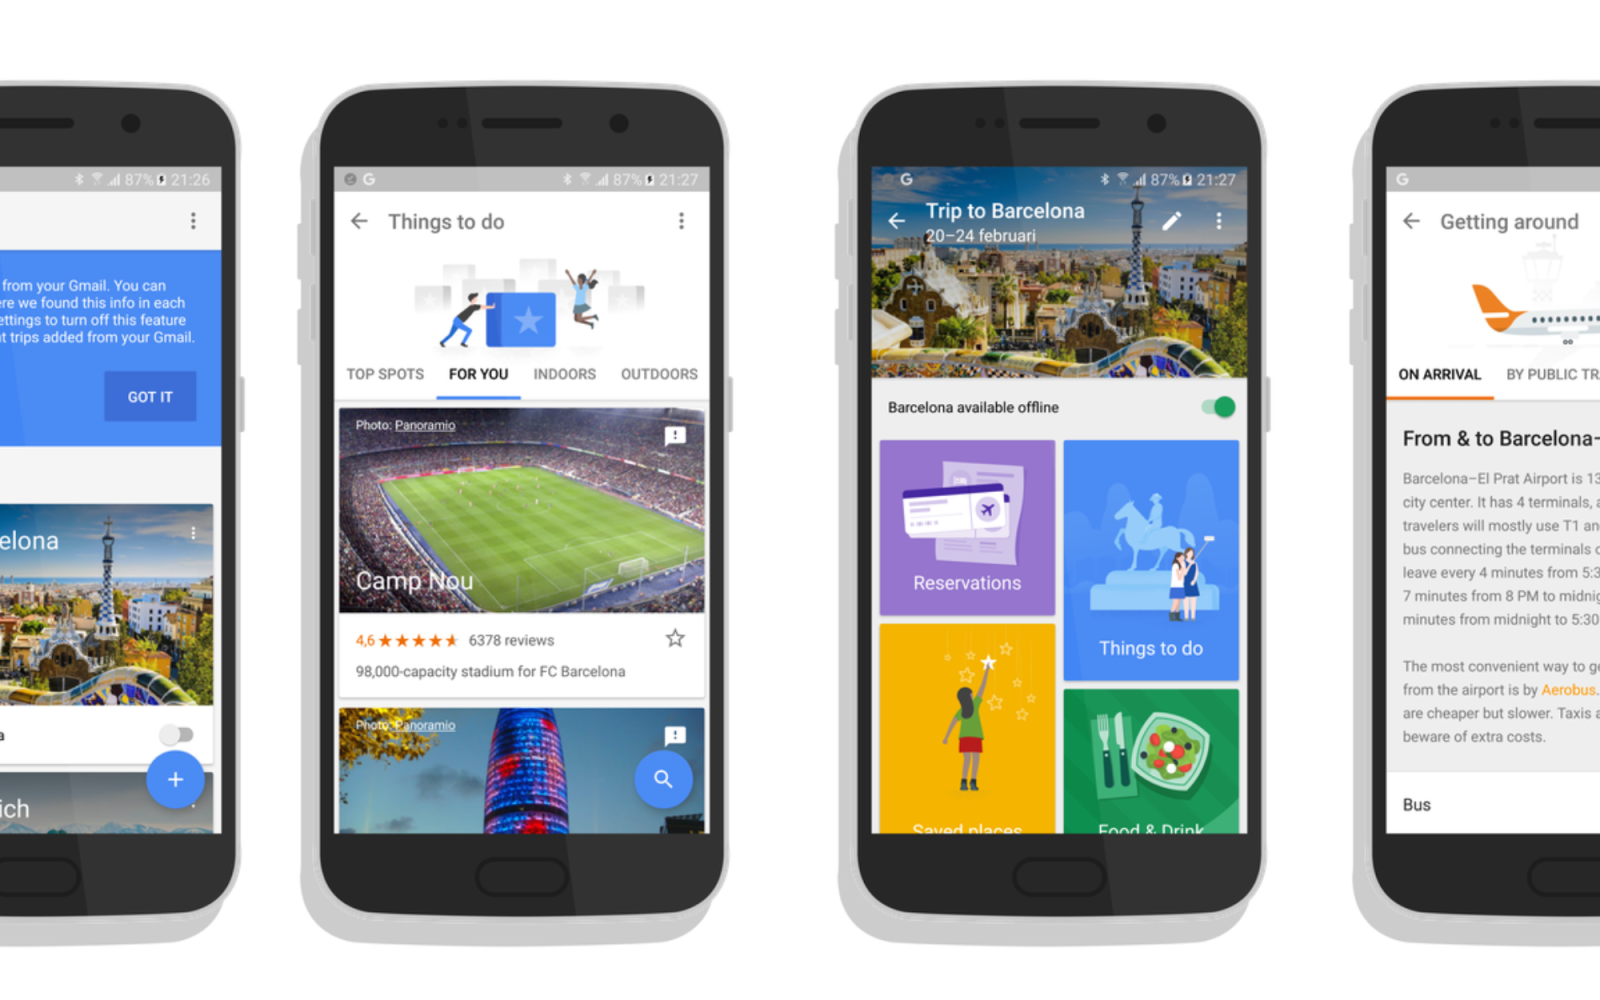 New Google Trips app is a smart assistant for your vacations, currently in beta testing